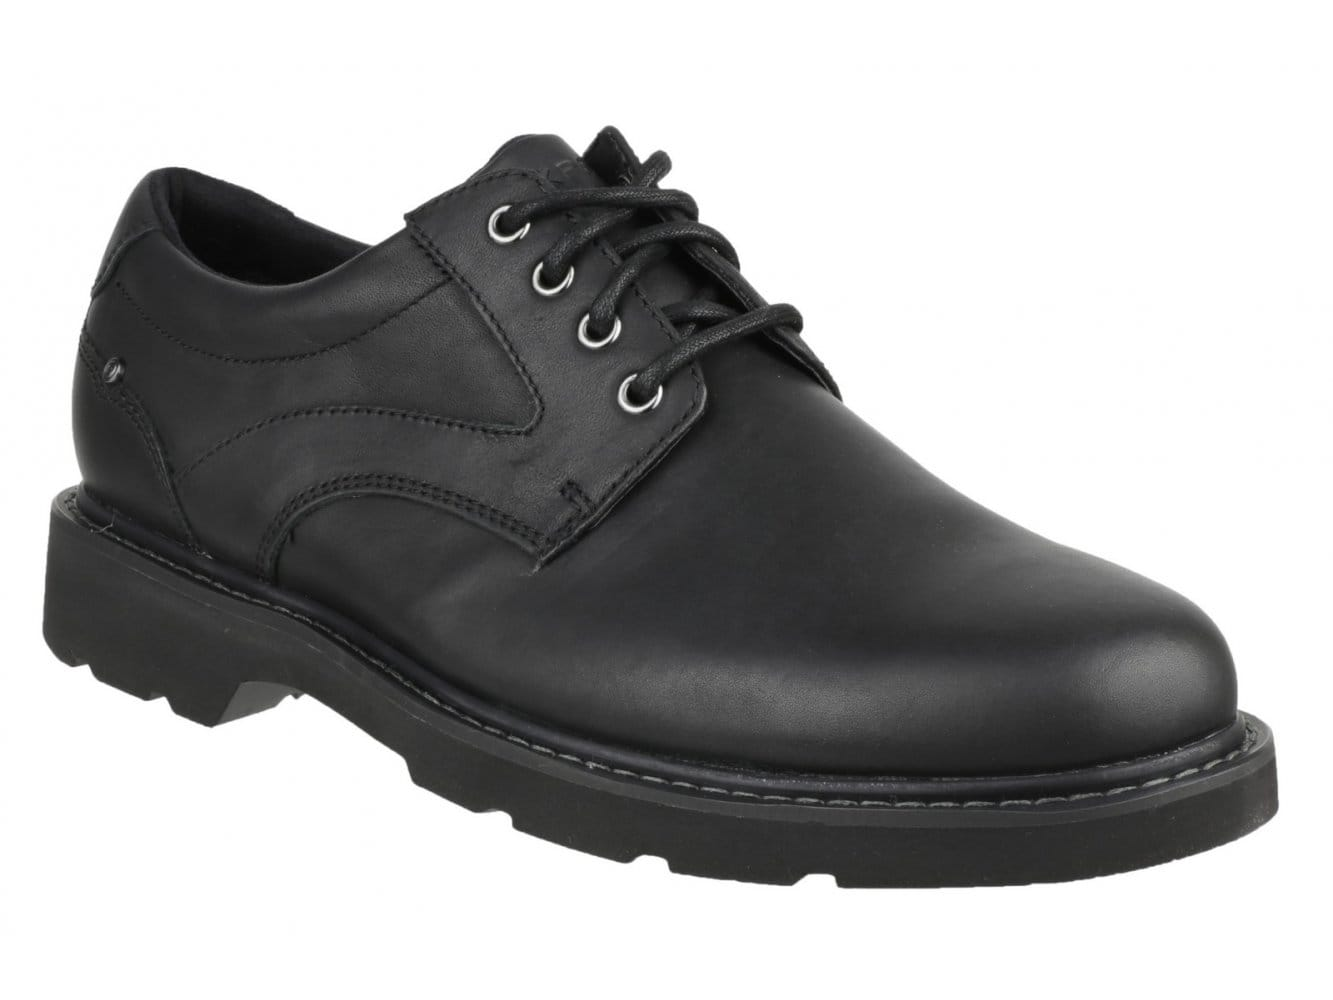 Rockport-CHARLESVIEW-Mens-Leather-Durable-Waterproof-Casual-Comfy-